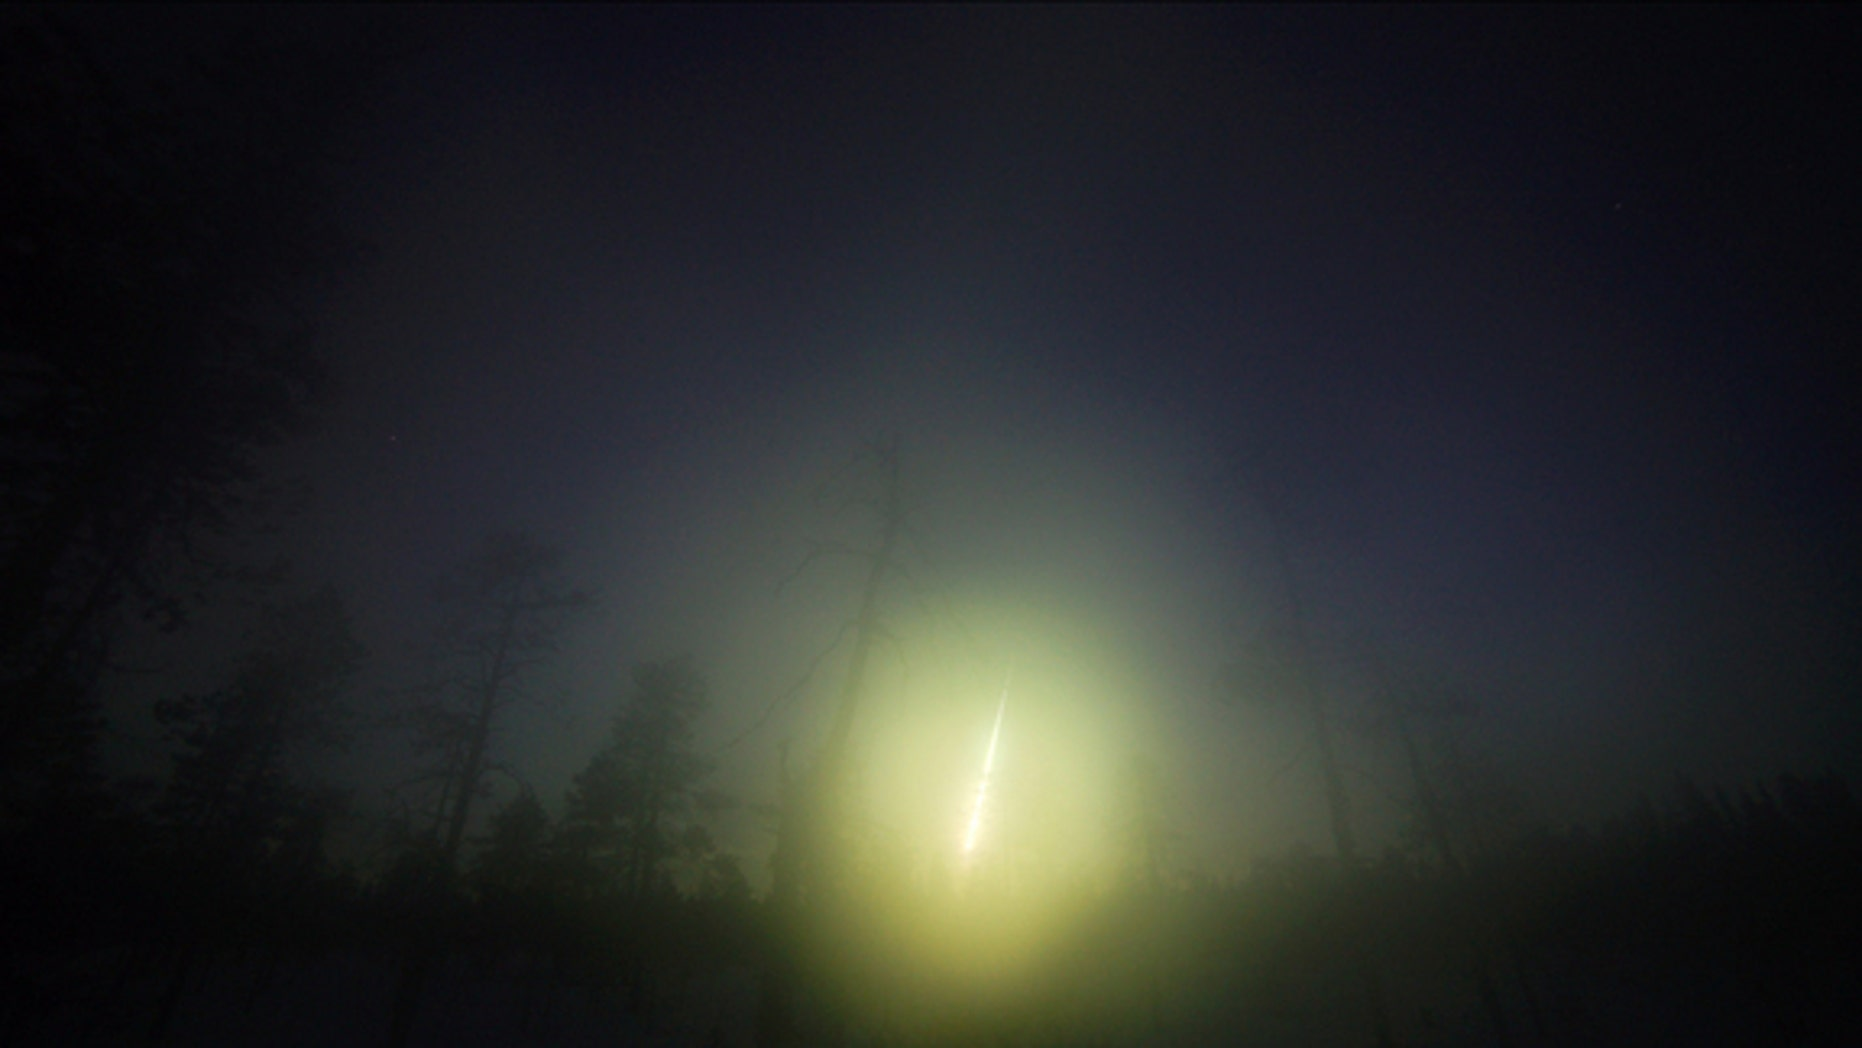 A picture of the Annama meteorite fireball over Russia's Kola Peninsula.